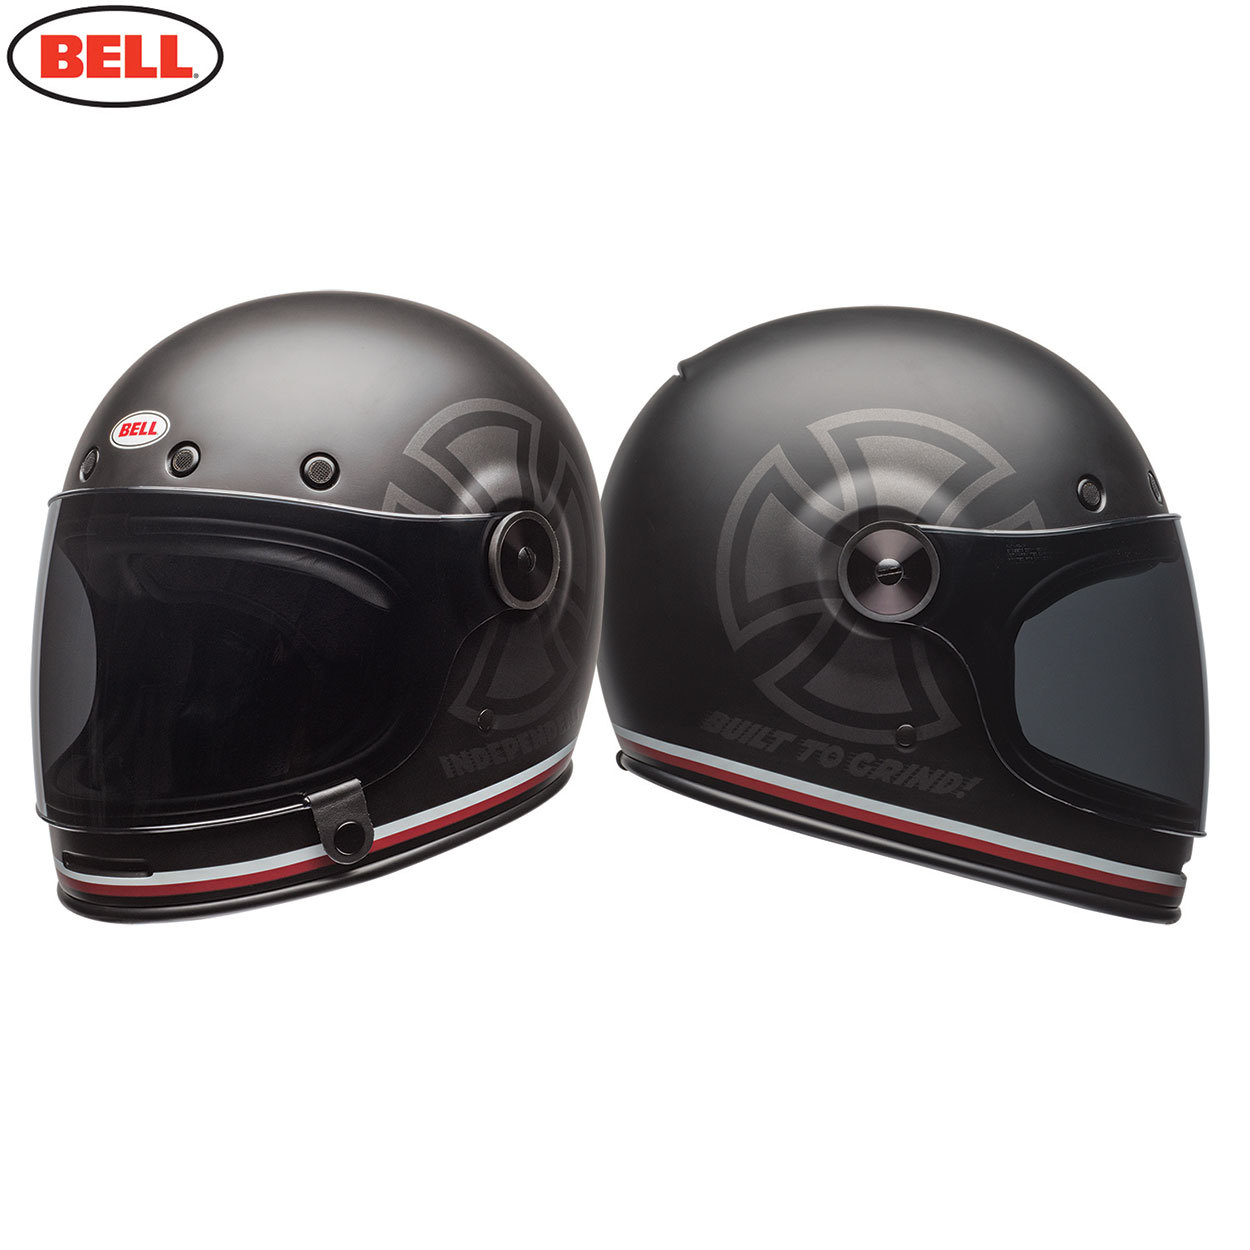 bell cruiser bullitt se adult helmet independent black. Black Bedroom Furniture Sets. Home Design Ideas